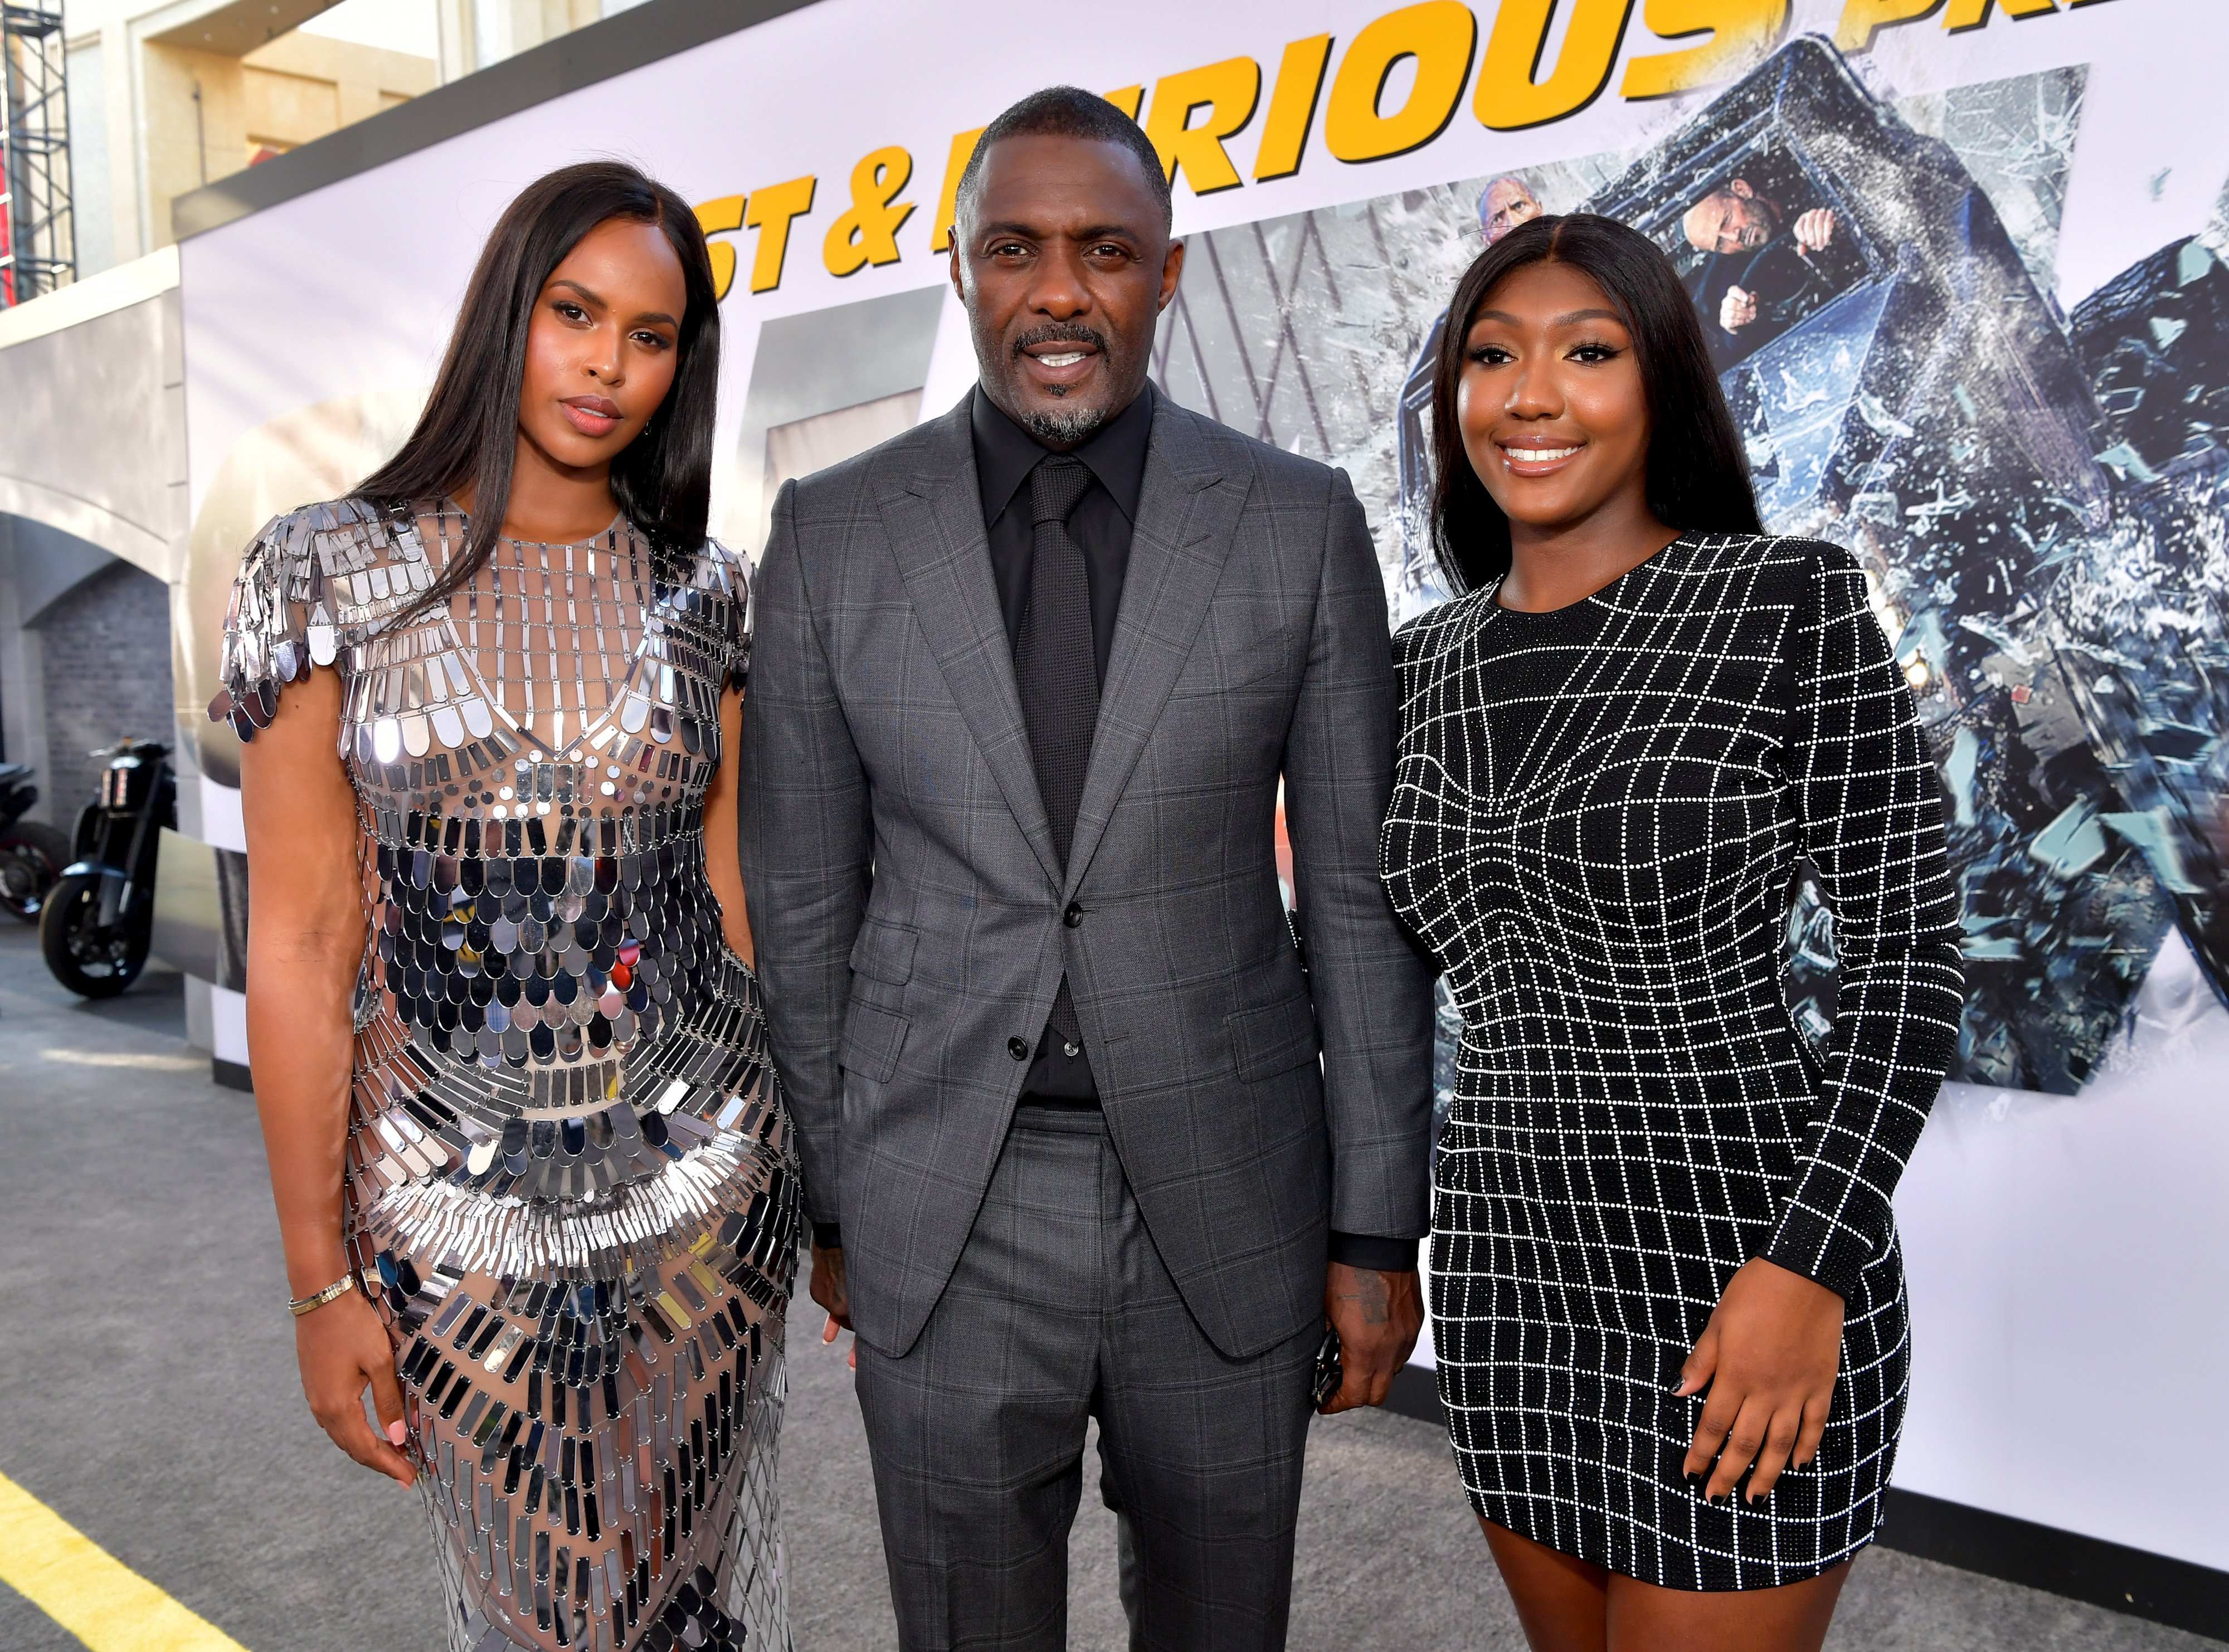 "(L-R) Sabrina Dhowre Elba, Idris Elba, & Isan Elba at the premiere of ""Fast & Furious Presents: Hobbs & Shaw"" in Hollywood, California on July 13, 2019. 